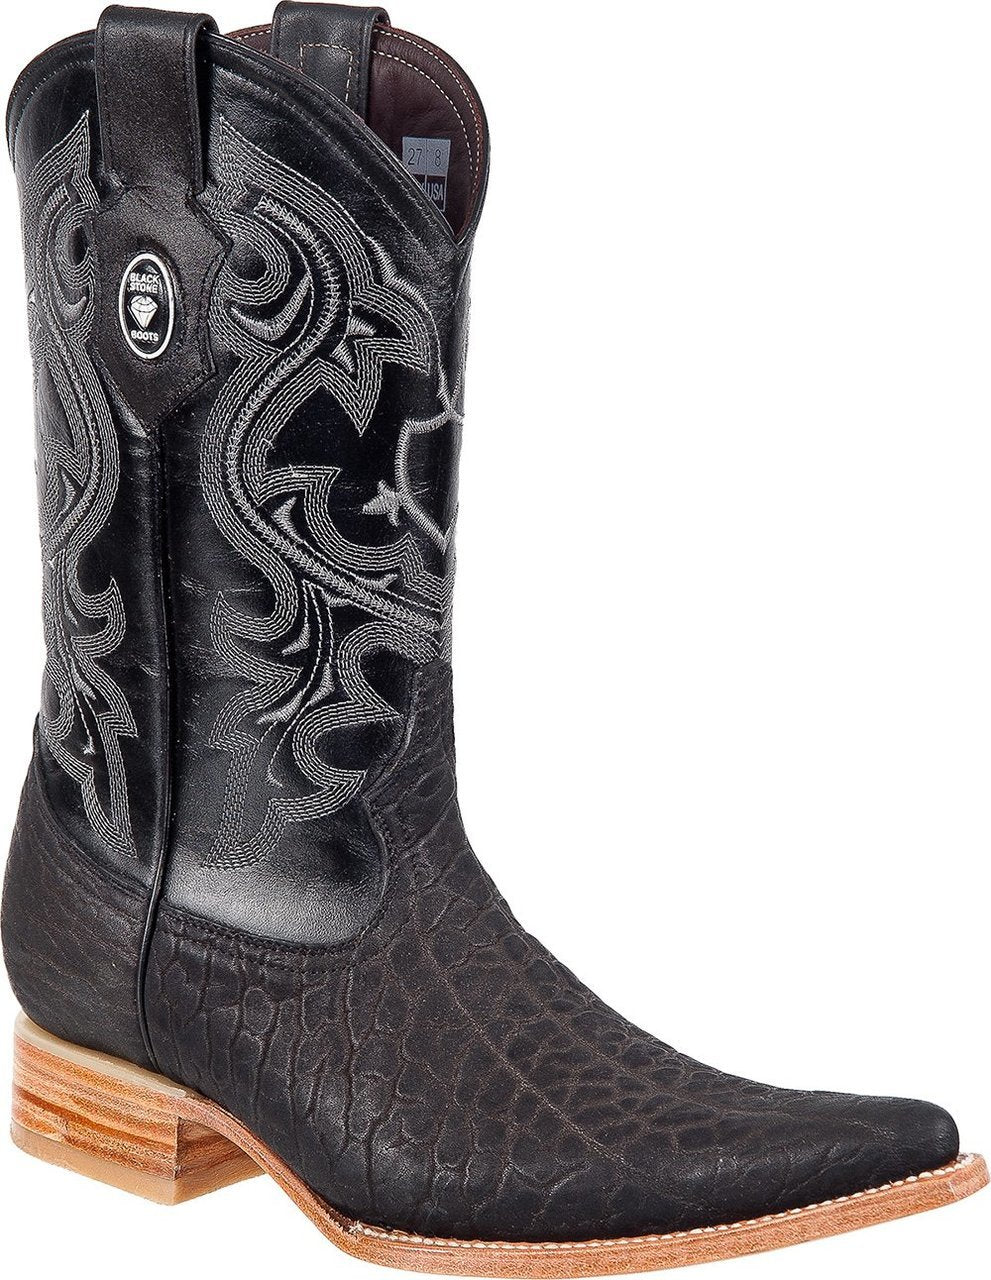 BLACK STONE Men's Black Bull Neck Boots - Ch Toe